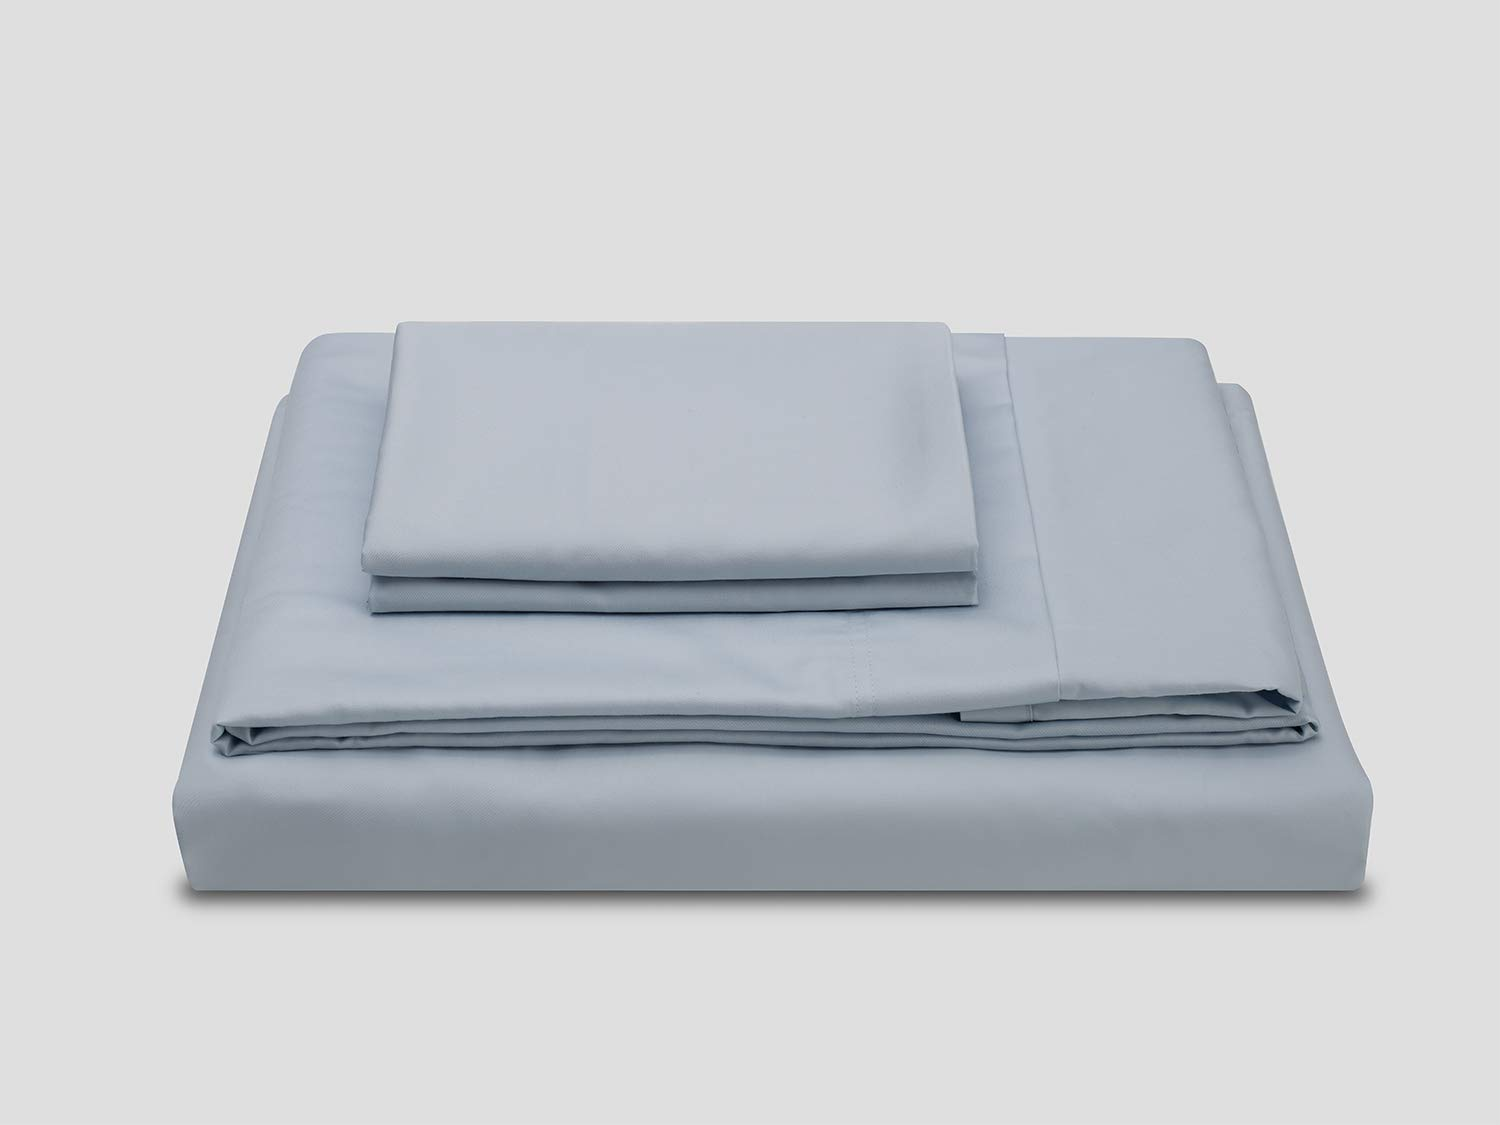 Powderbluee California King Molecule Bed Sheets with Cooling Cotton & Tencel Lyocell fibers Construction, Super Durable and Ultra Lustrous Silk Satin Feel, Deep Pocket Sheet Set (CloudGrey, Twin XL)